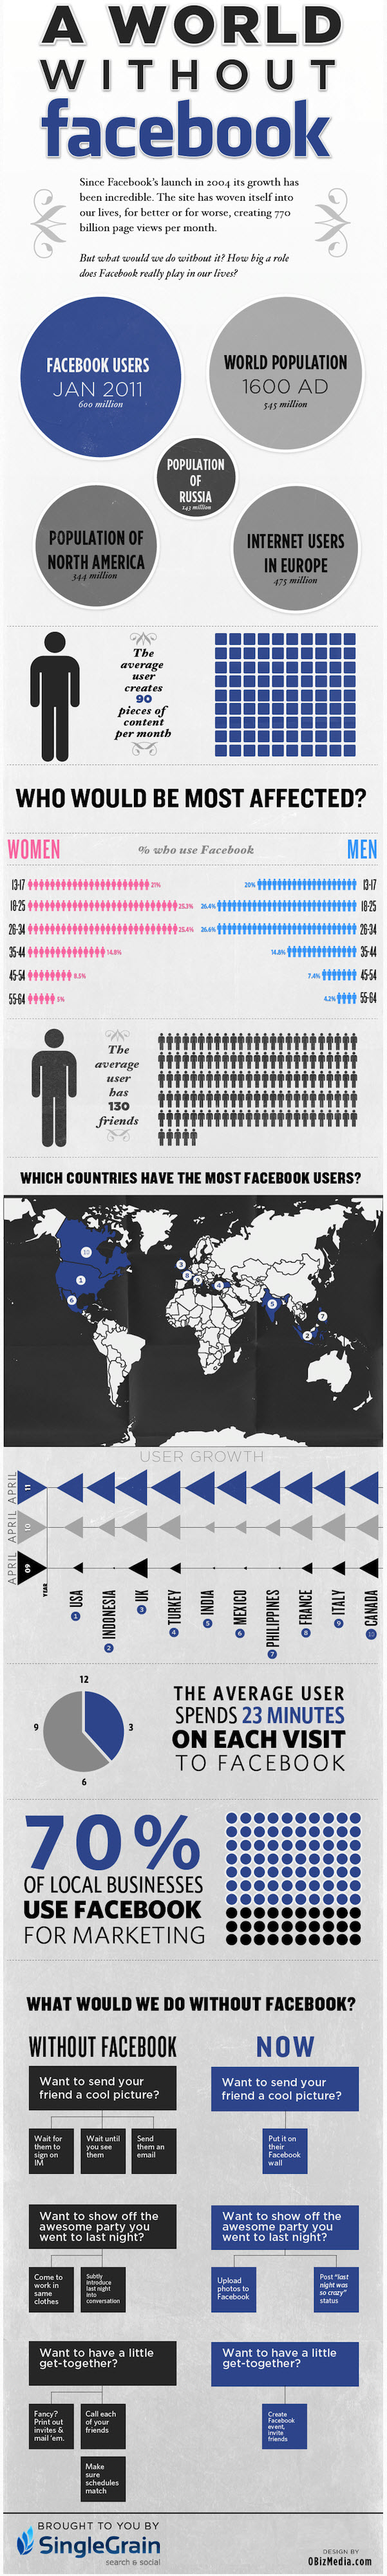 Facebook Infographic a world without Facebook Social Media   What is Facebook?